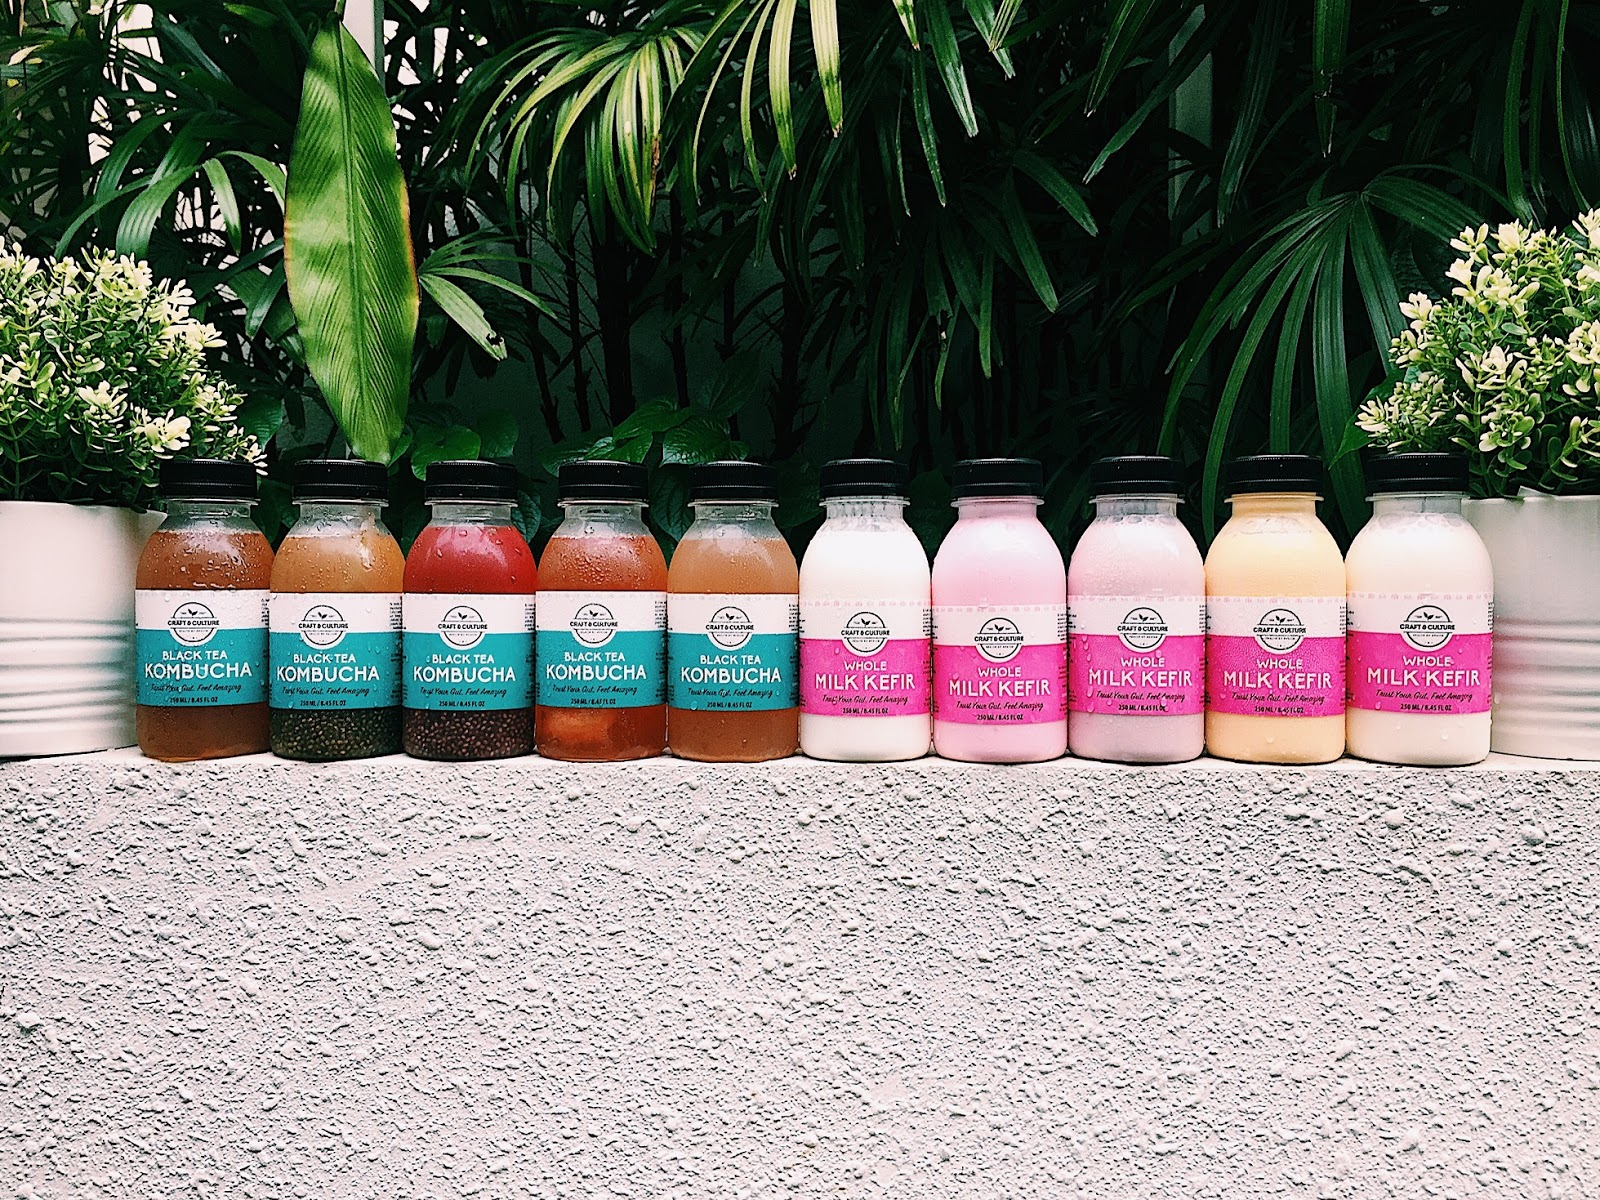 To many, kombucha and milk kefir may seem like yet another superfood fad, but to Winnie Ong and Lai Zhiwei, founders of Craft & Culture, they have witnessed the benefits of the functional beverages first hand.